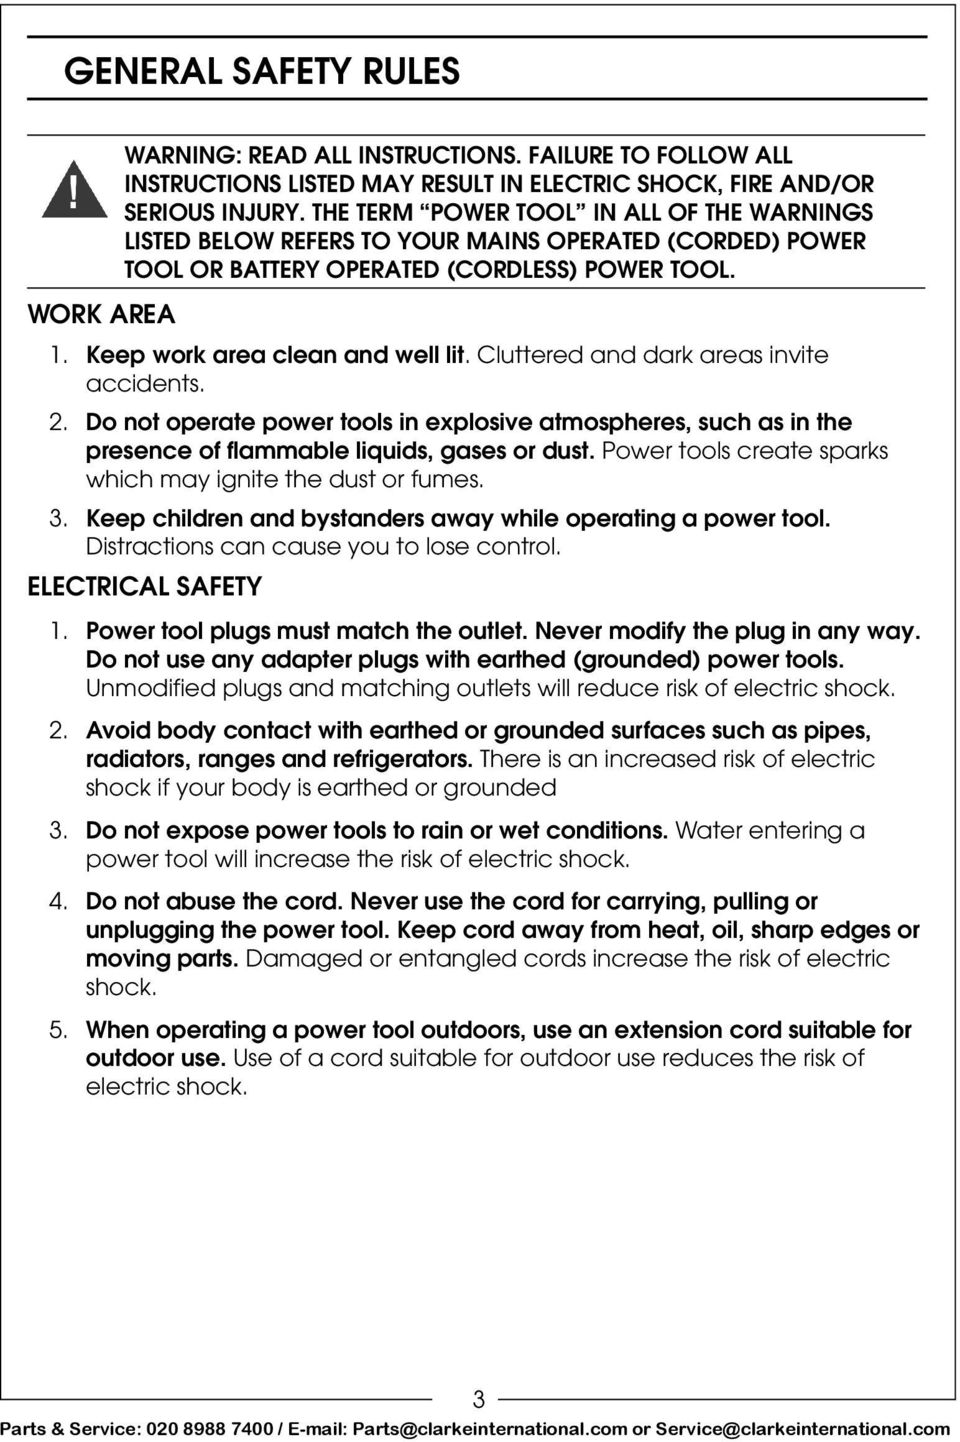 Cluttered and dark areas invite accidents. 2. Do not operate power tools in explosive atmospheres, such as in the presence of flammable liquids, gases or dust.